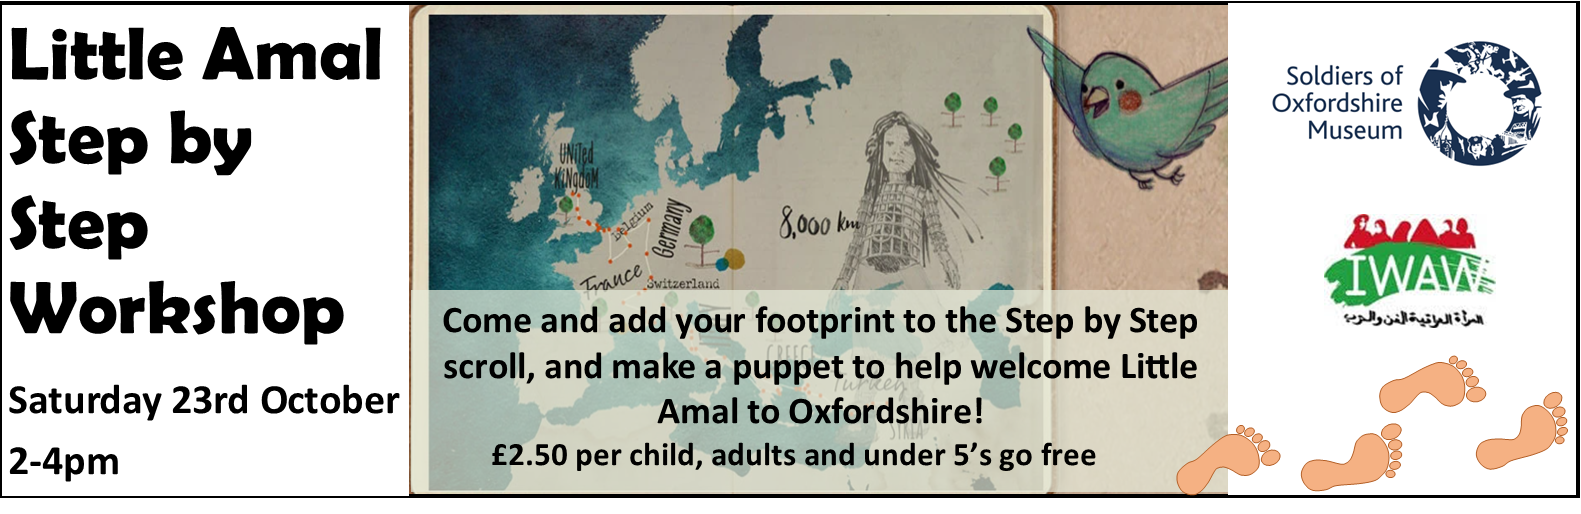 Add your footstep to the Step by Step scroll and welcome Little Amal in Oxfordshire!